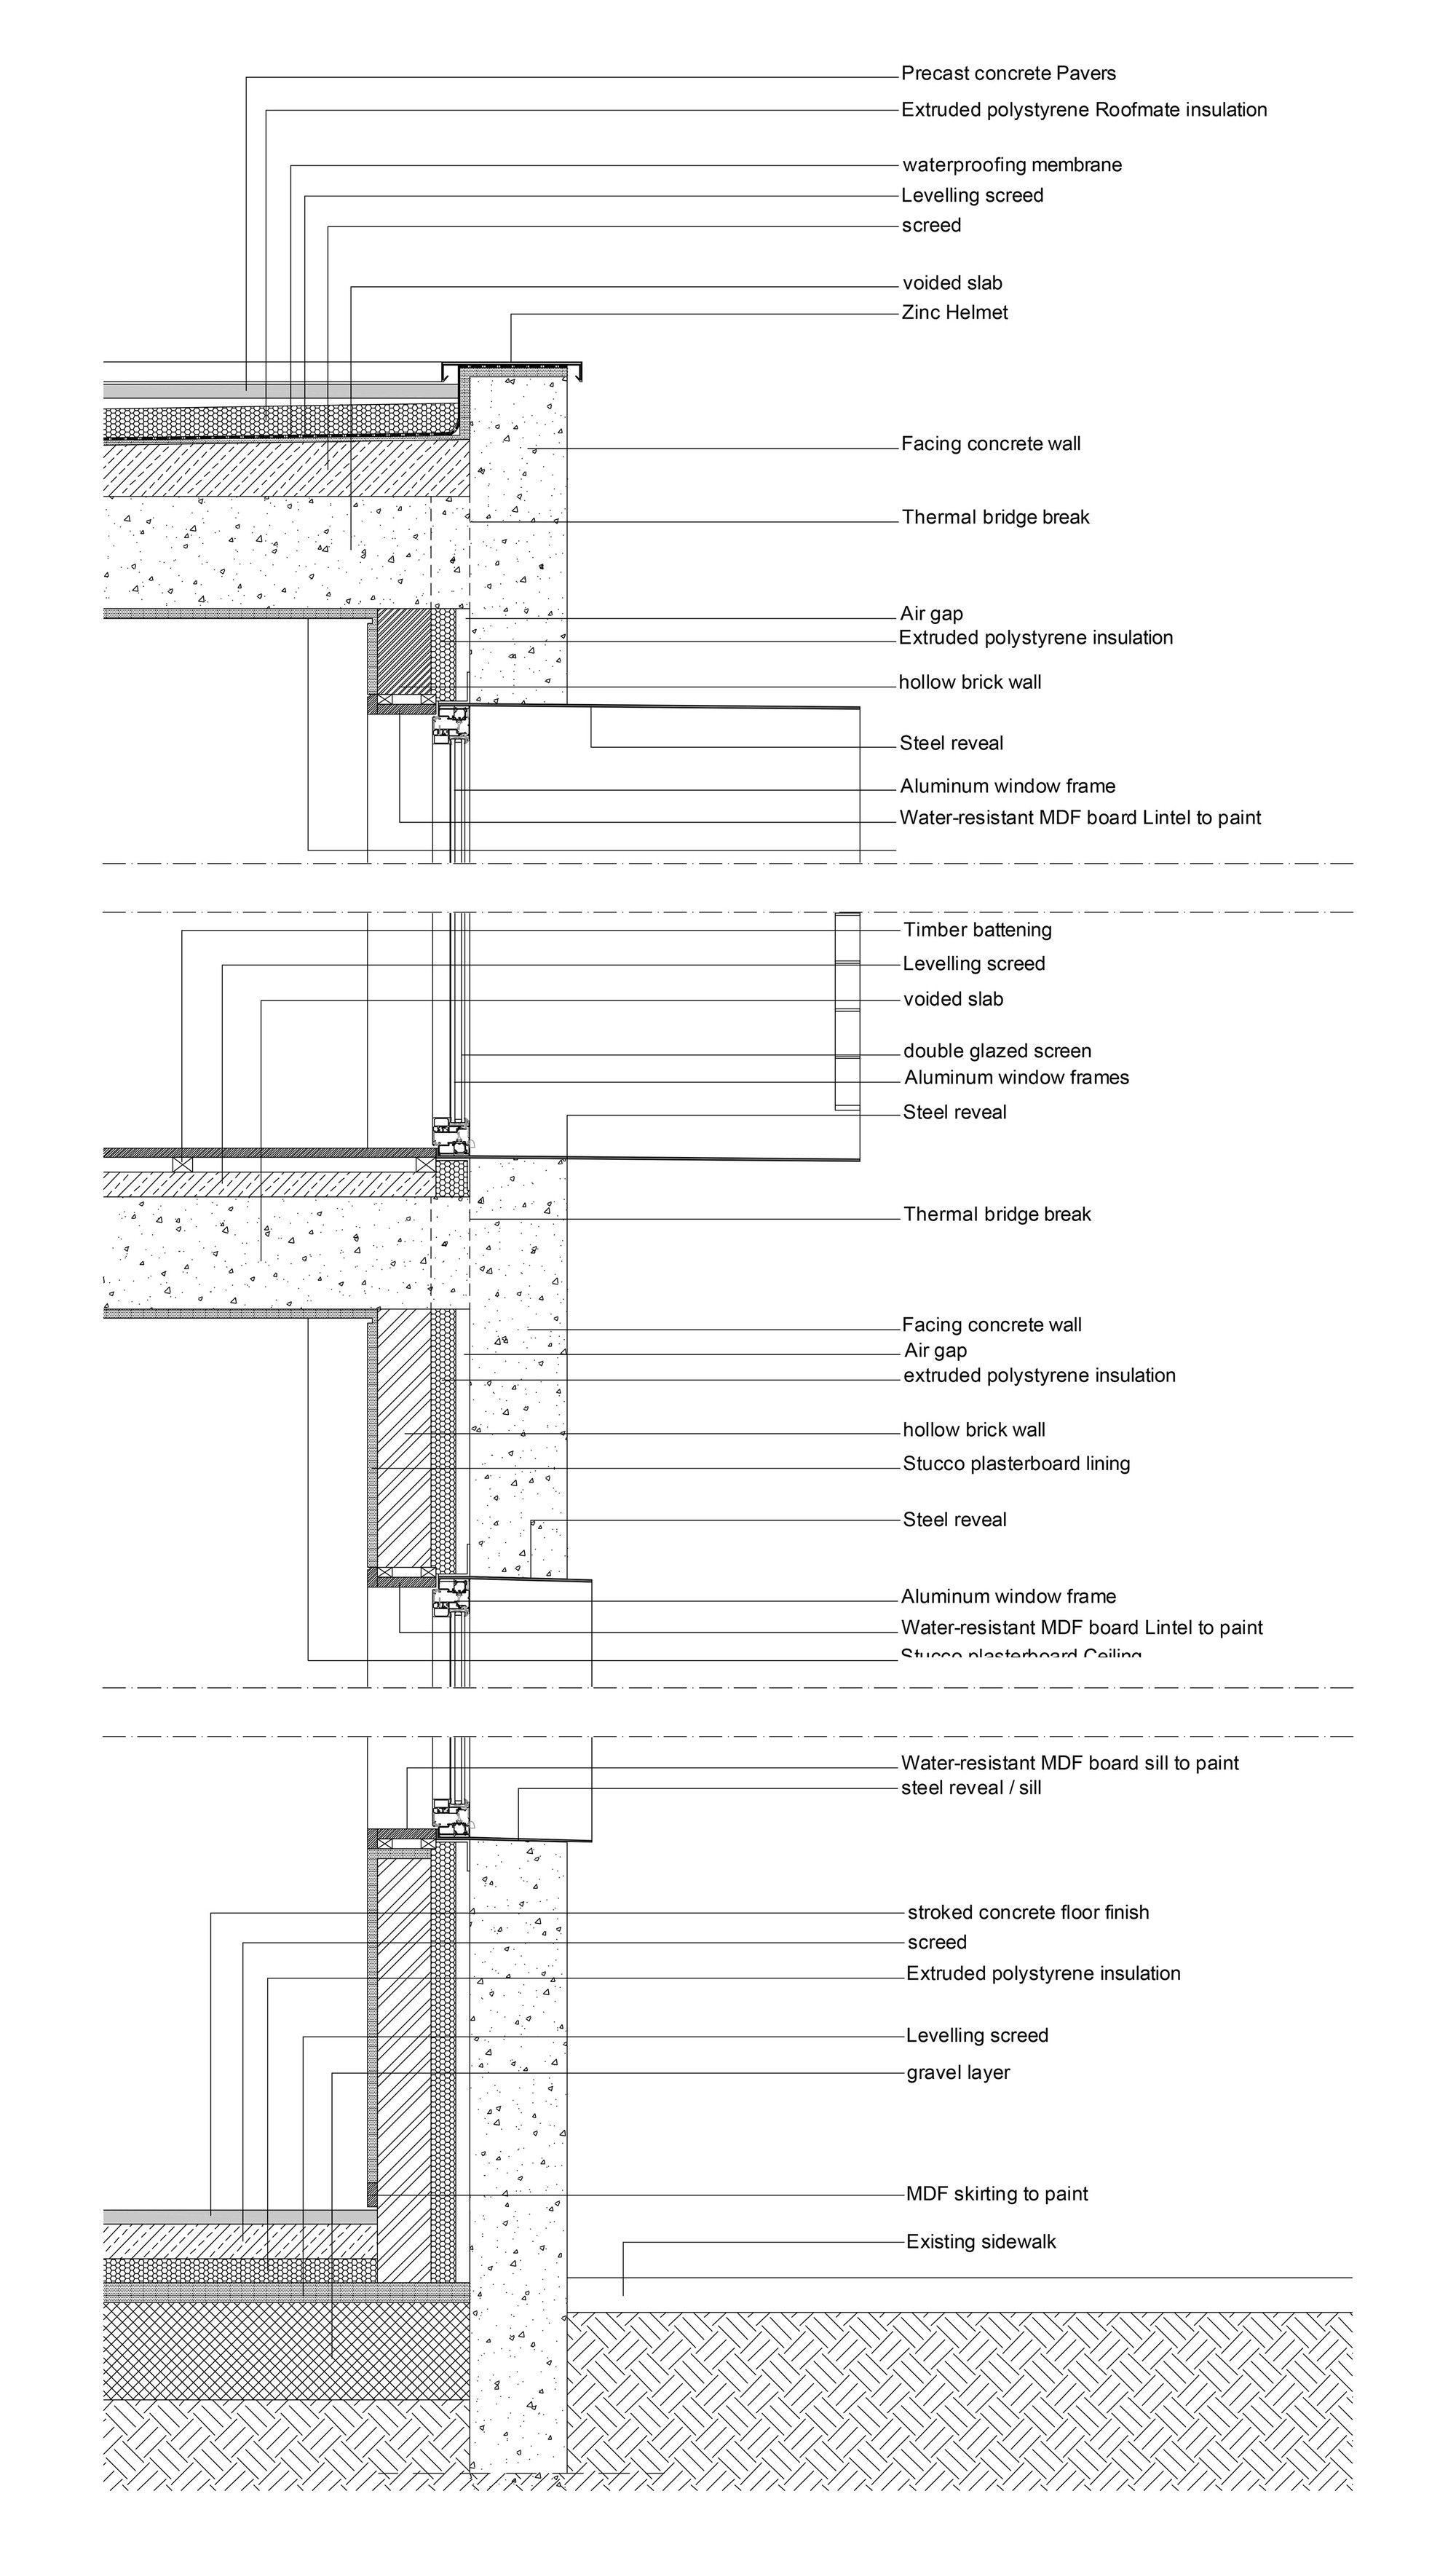 Gallery Of Ja House Maria Ines Costa Filipe Pina 37 Concrete Facade Construction Details Architecture Wall Section Detail